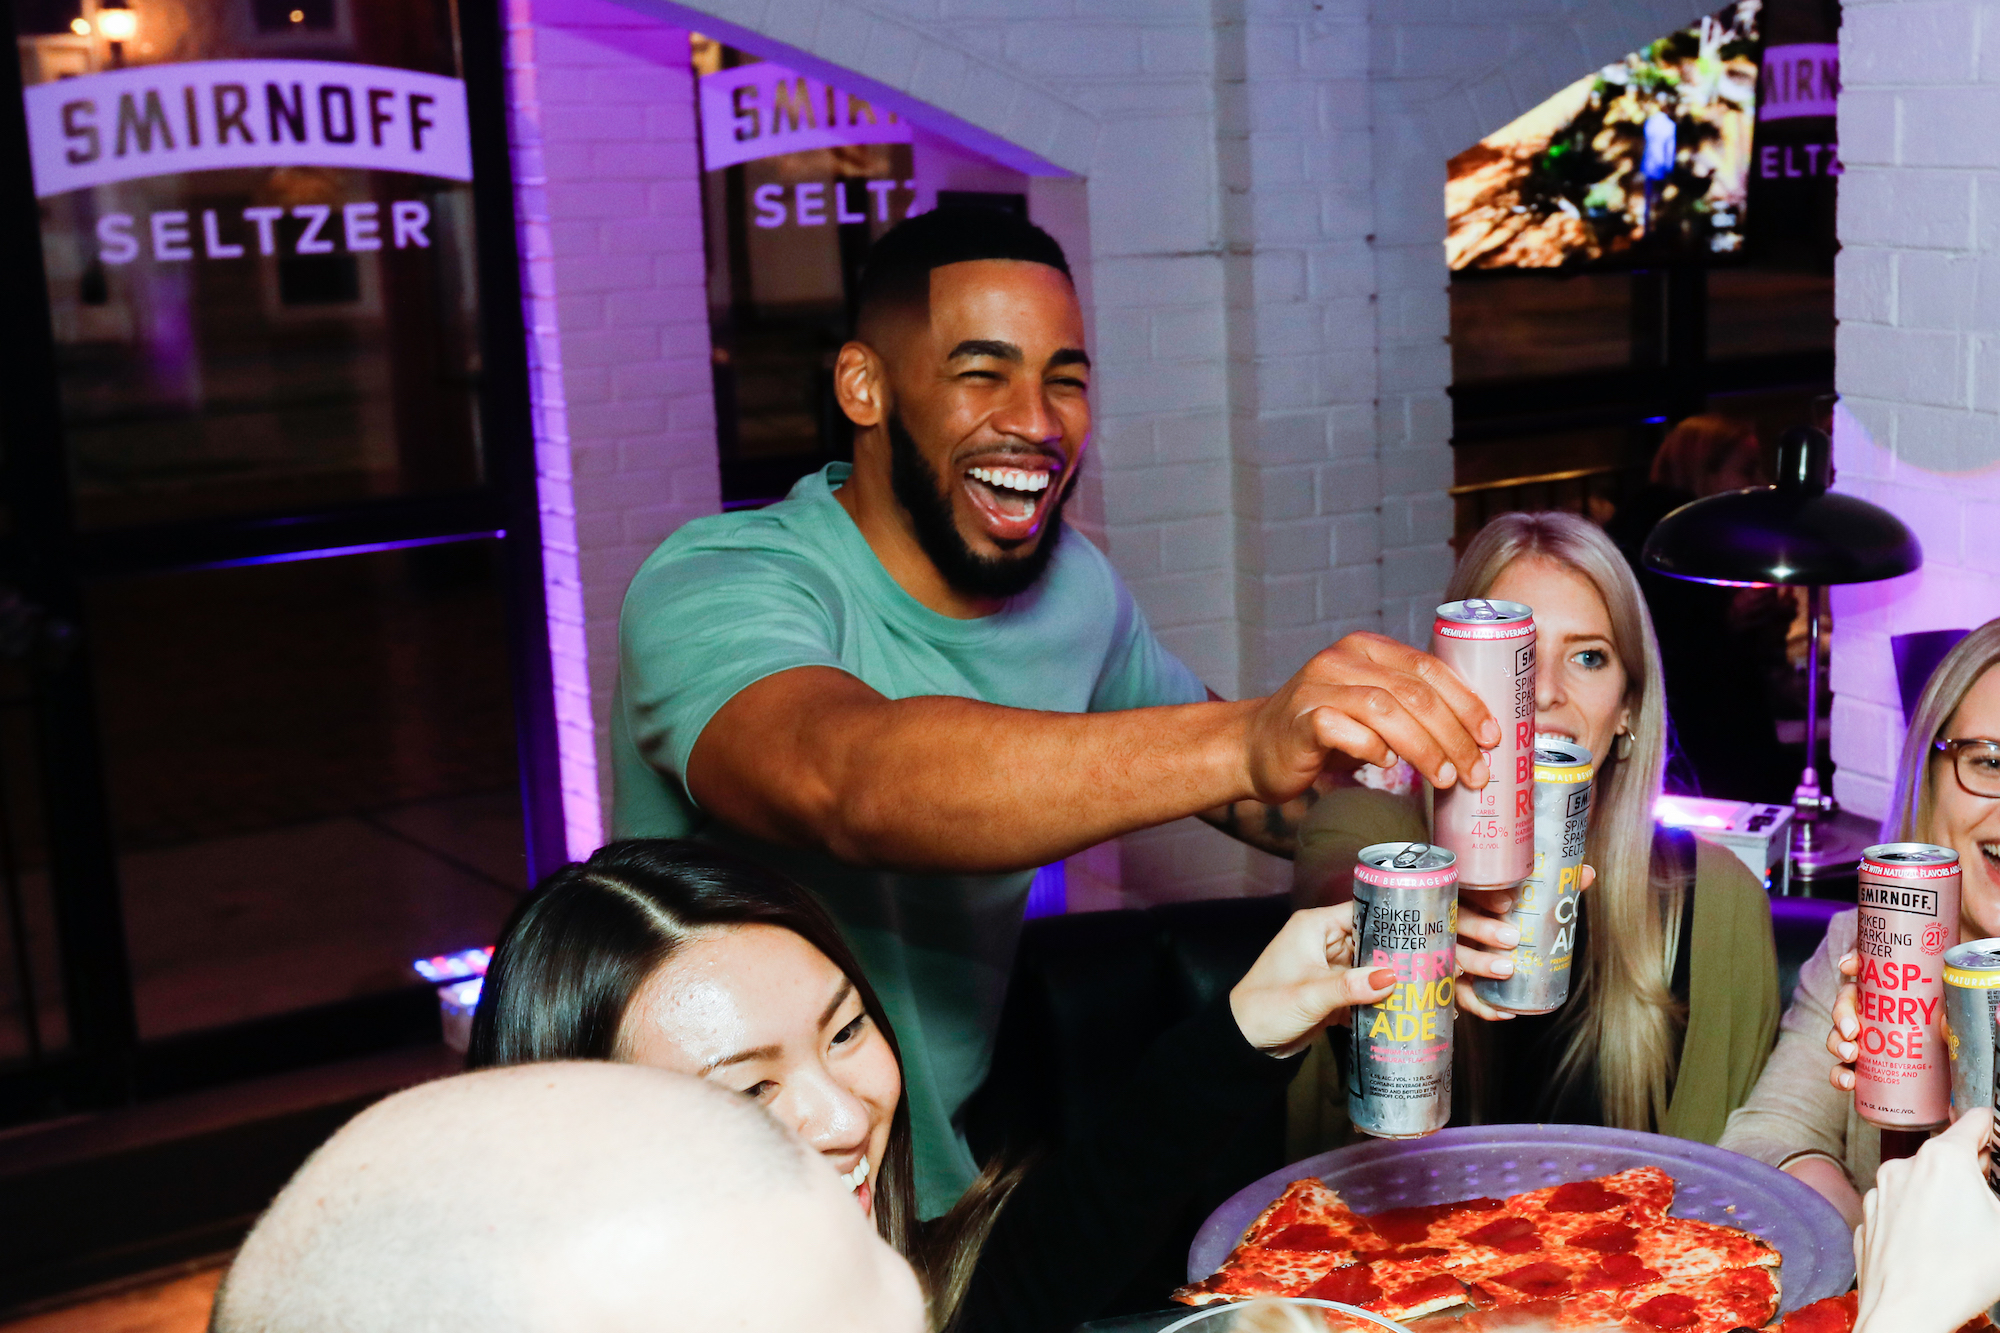 Mike Johnson and fans toast to the end of an amazing Bachelor season with Smirnoff Seltzer on March 10, 2020.